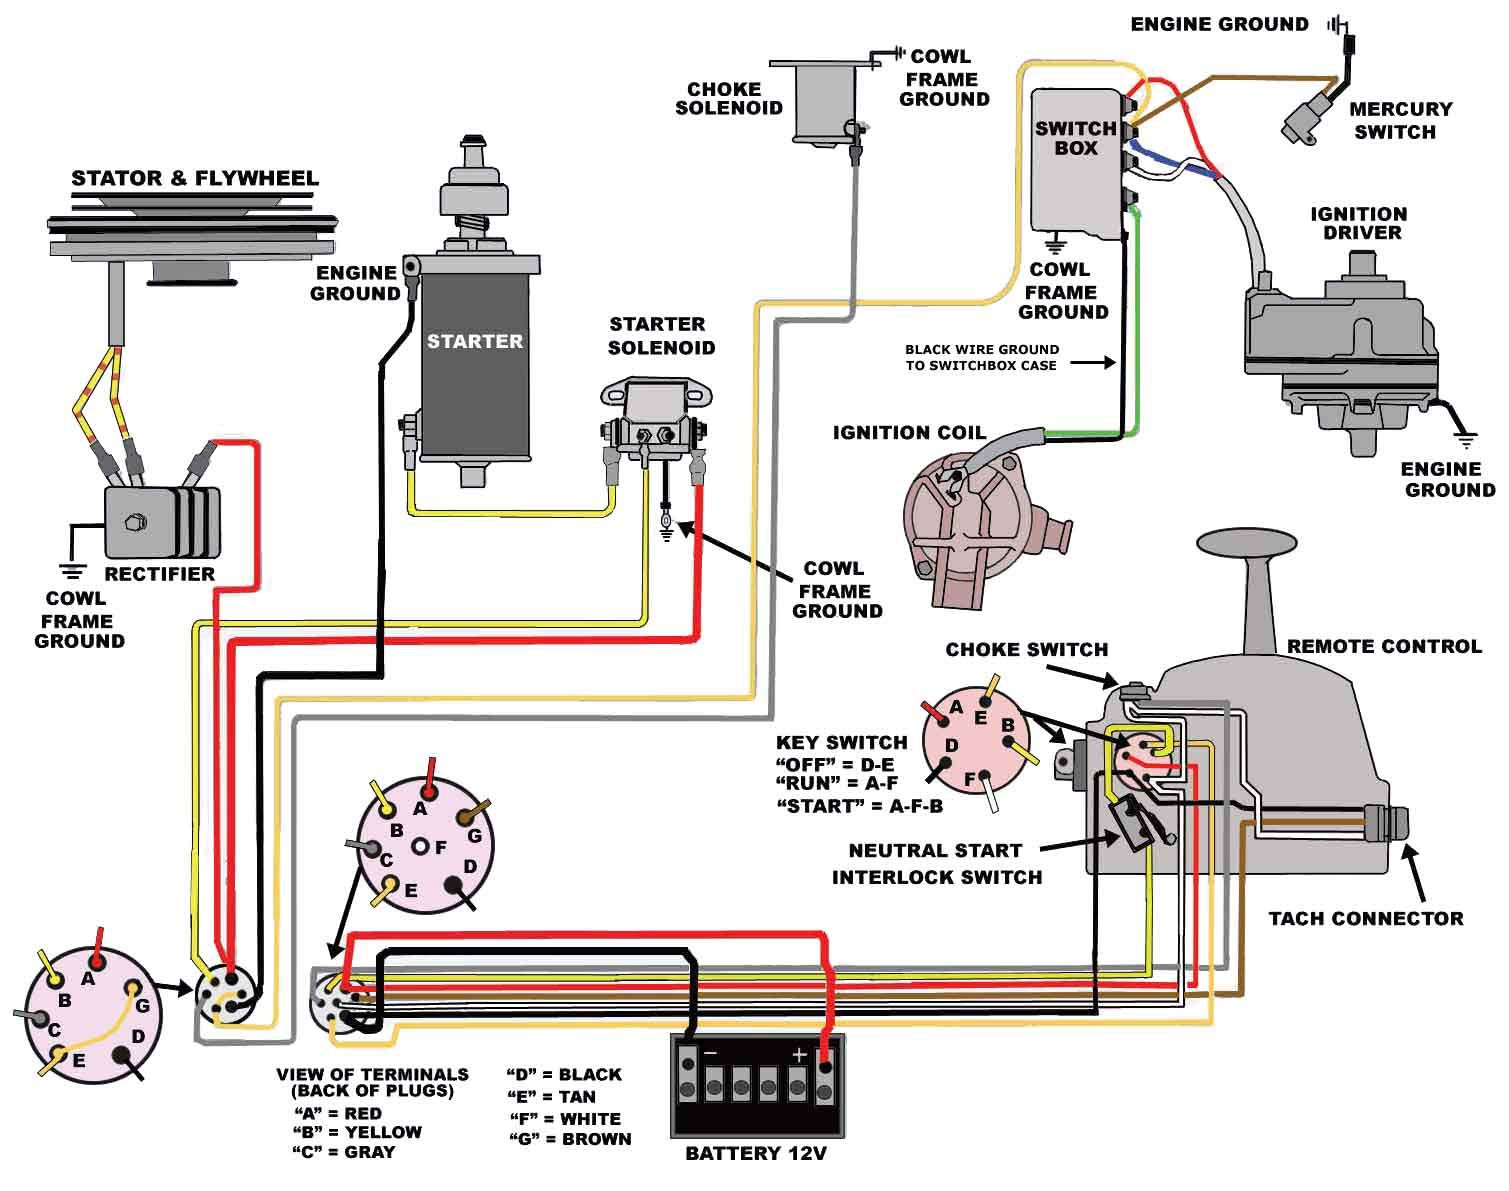 medium resolution of mercury wiring diagram wiring diagram blogs rh 4 11 2 restaurant freinsheimer hof de mercury force 40 hp wiring diagram mercury 40 hp 4 stroke wiring